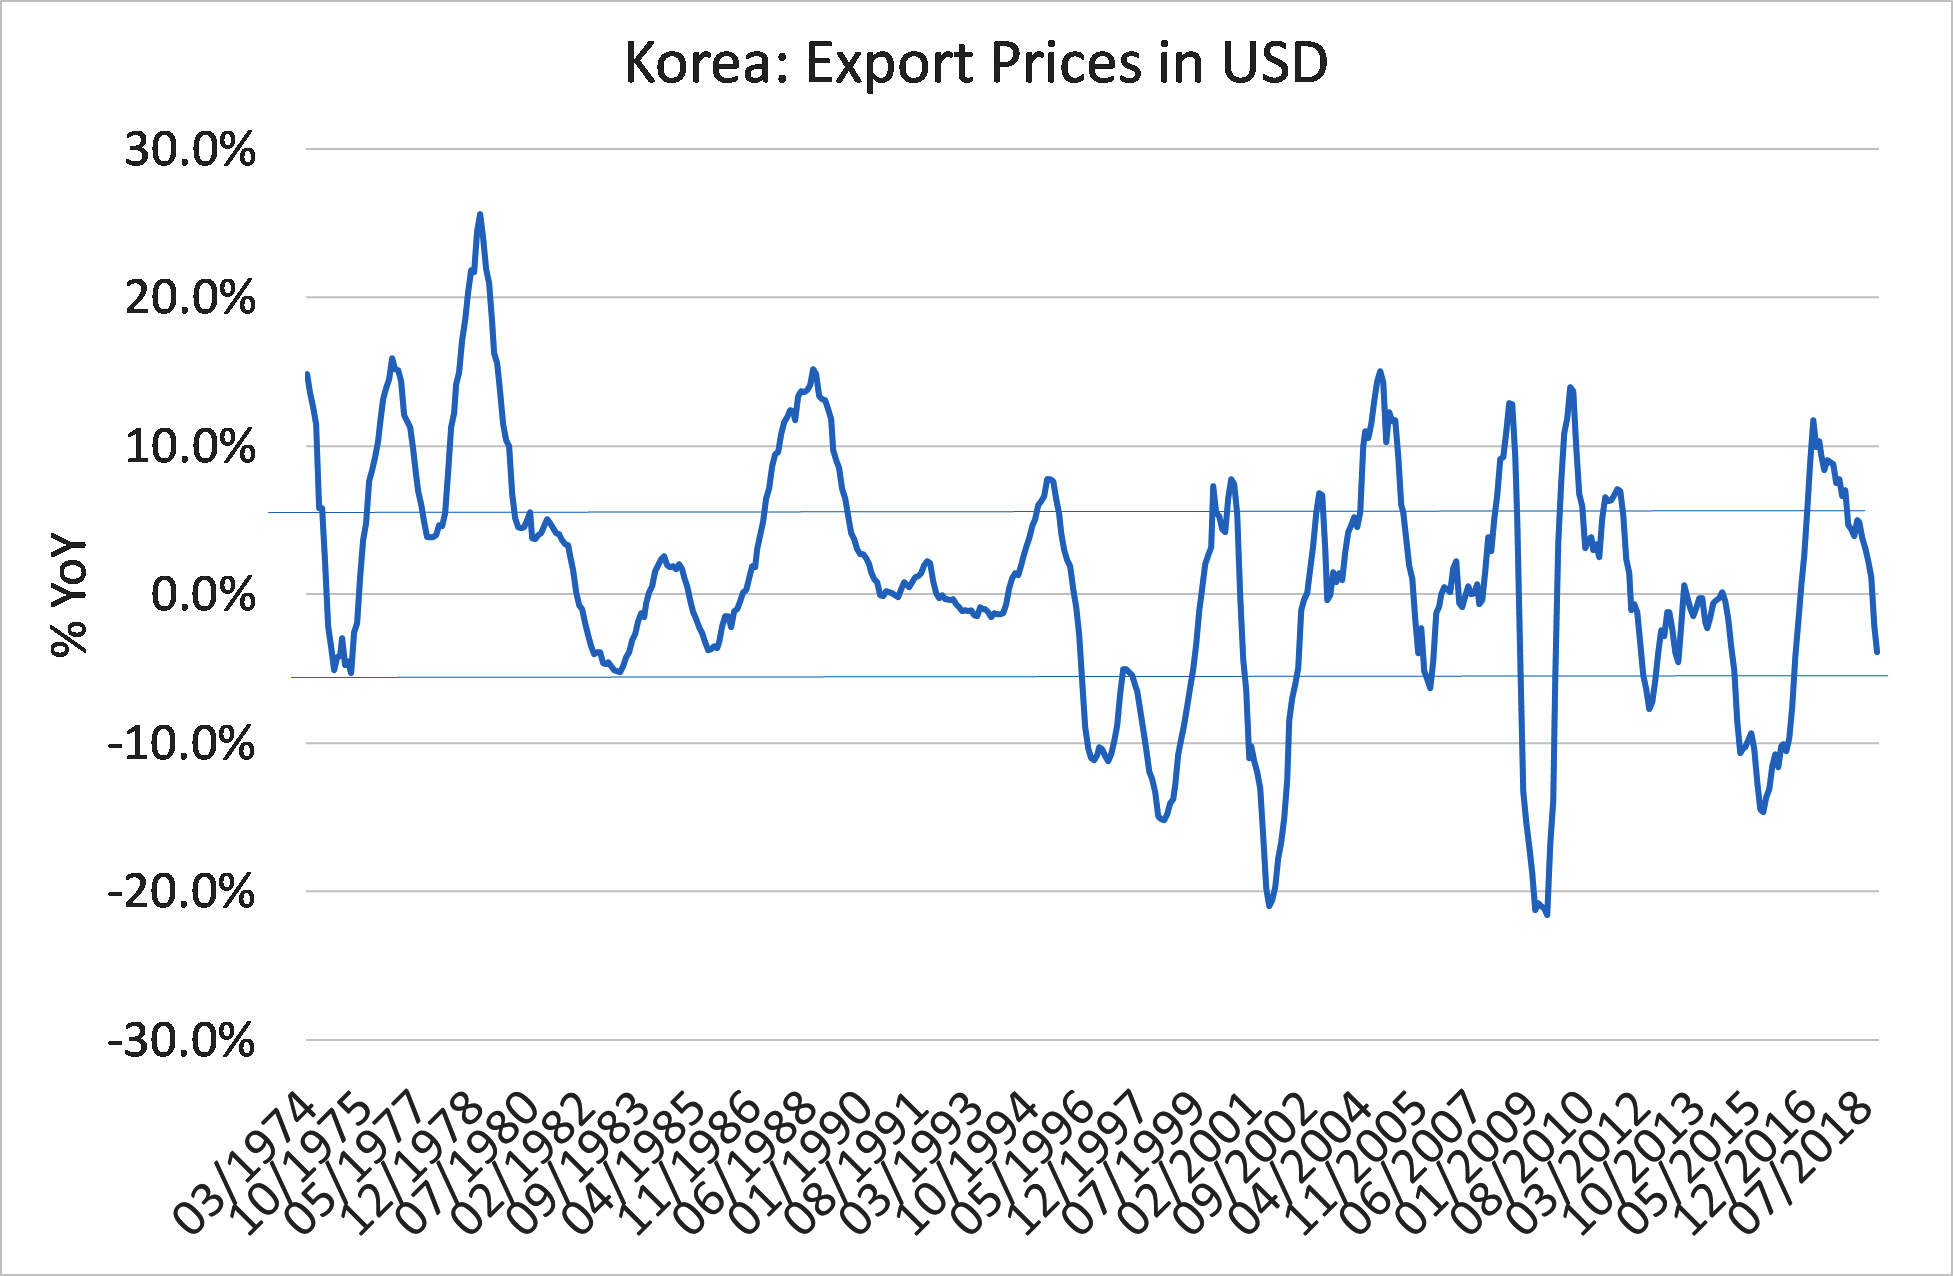 Korea: Export Prices in USD